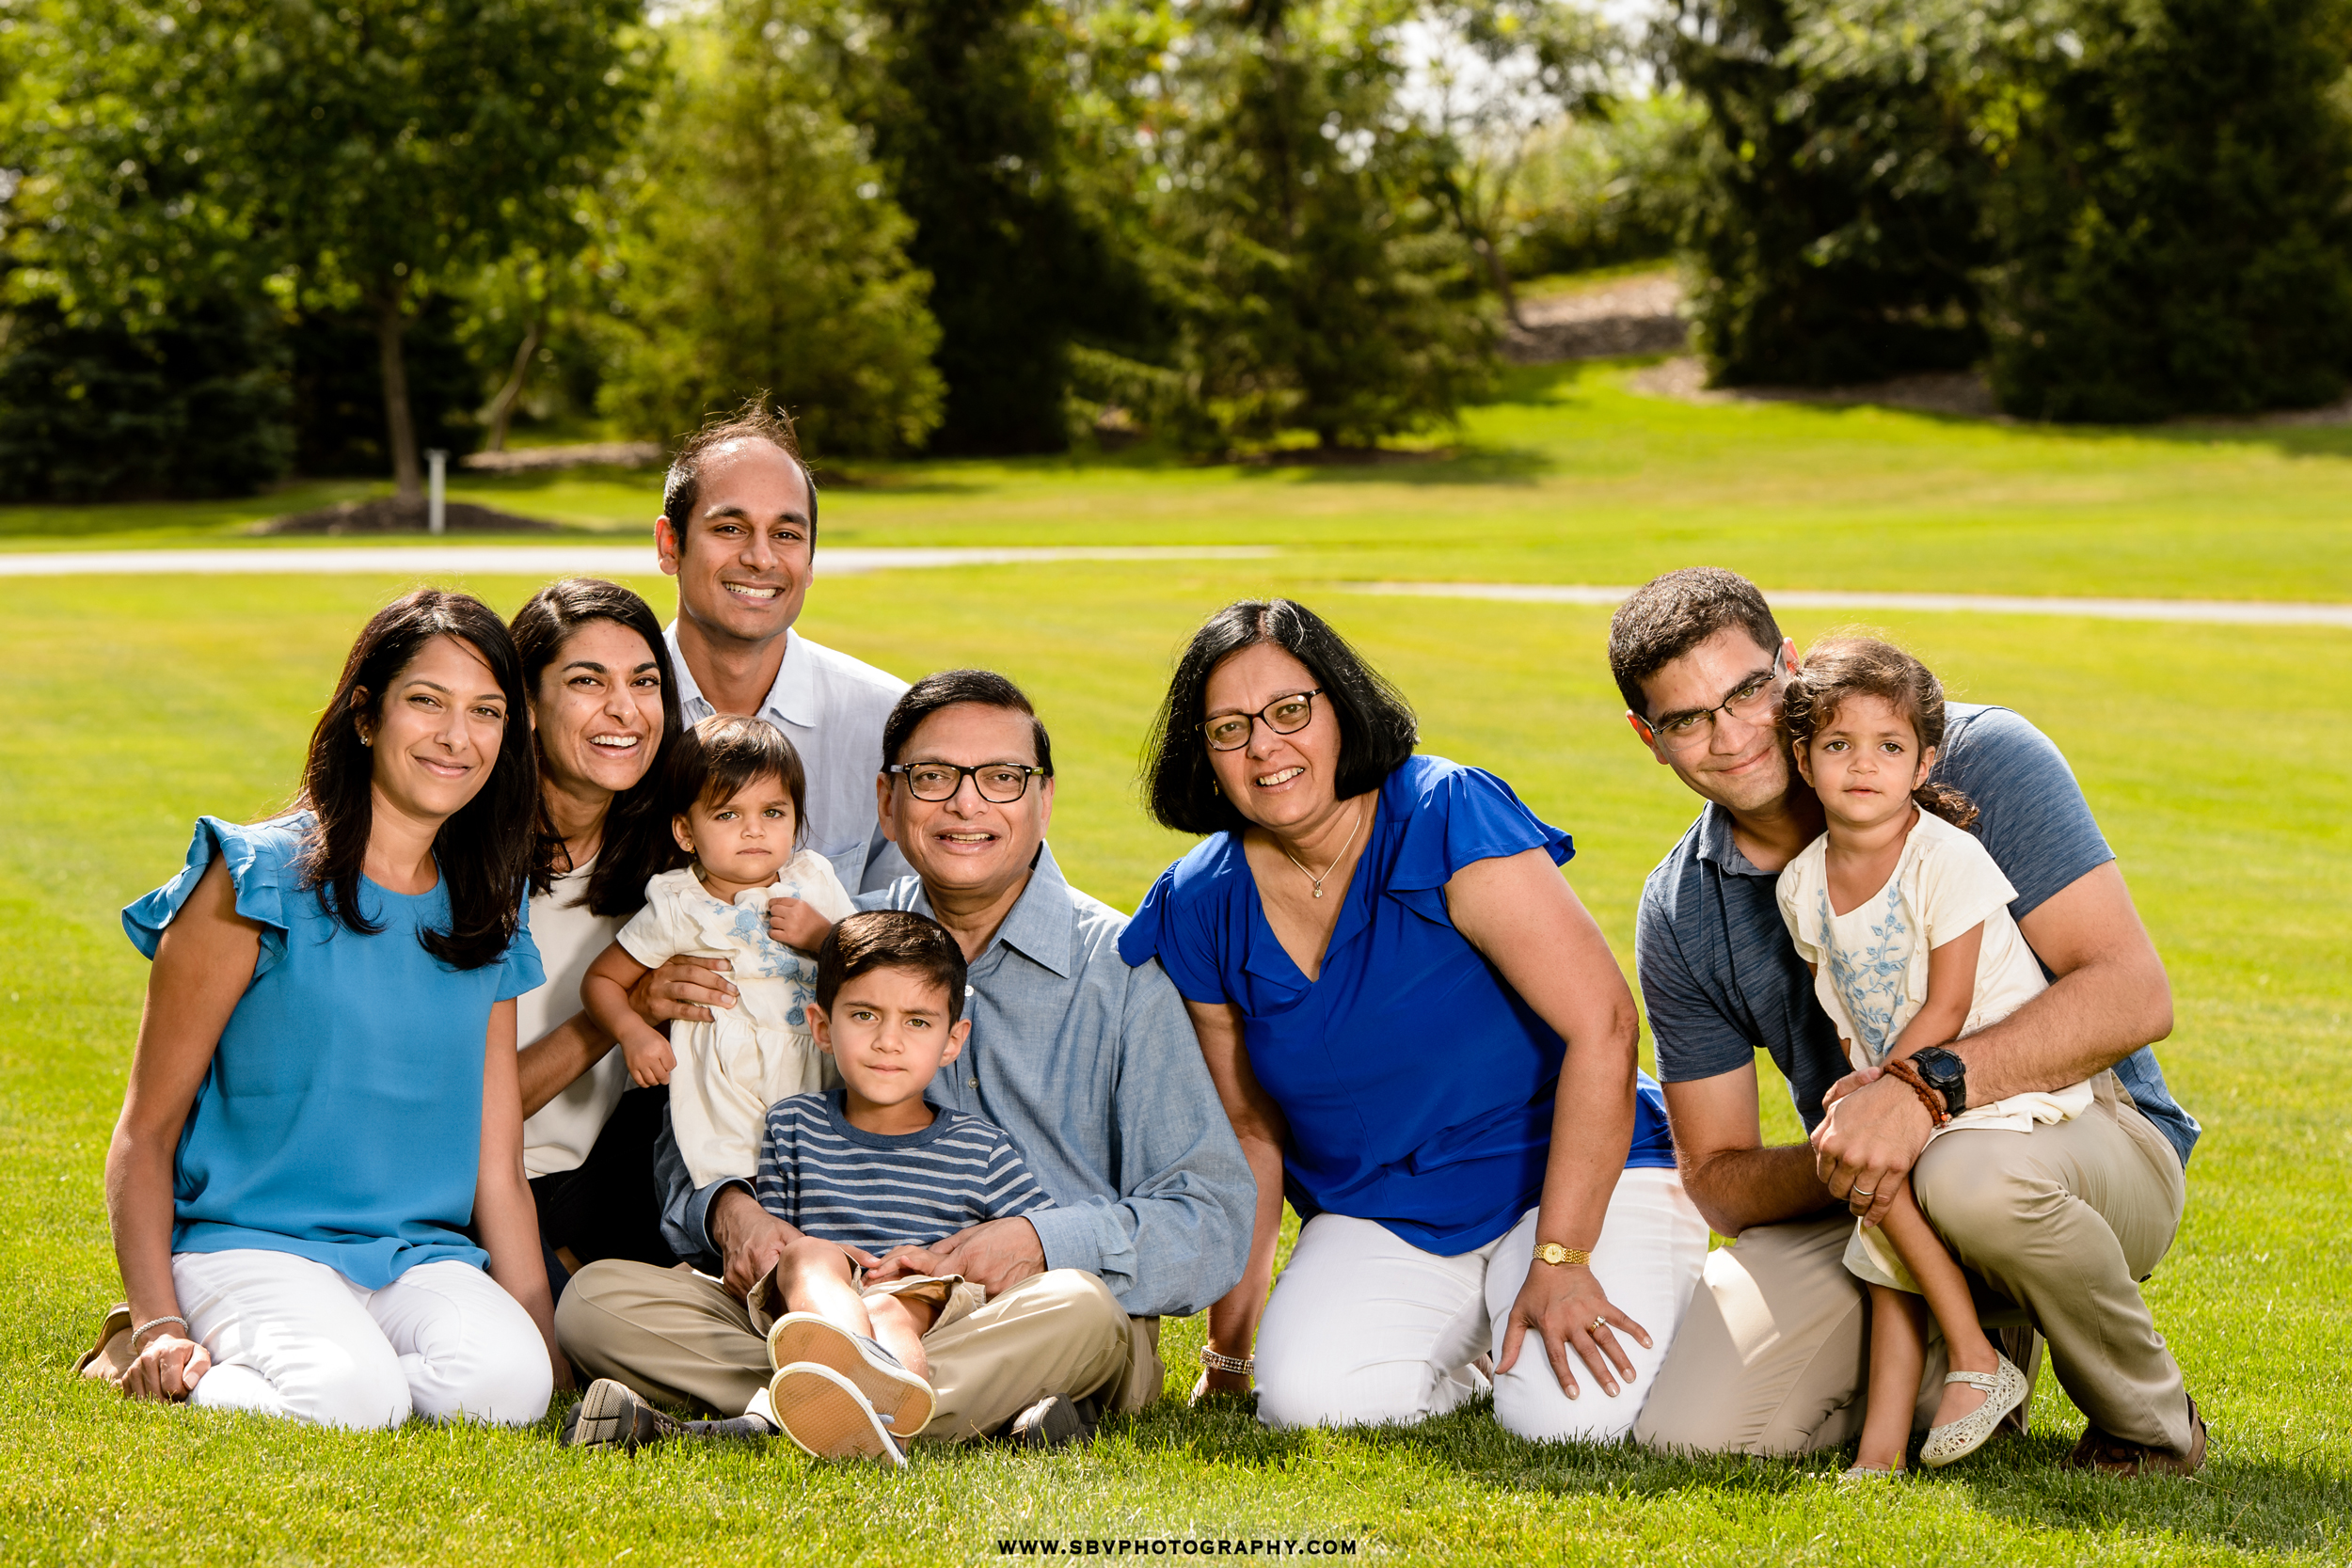 Family lifestyle portrait at Centennial Park in Munster, Indiana